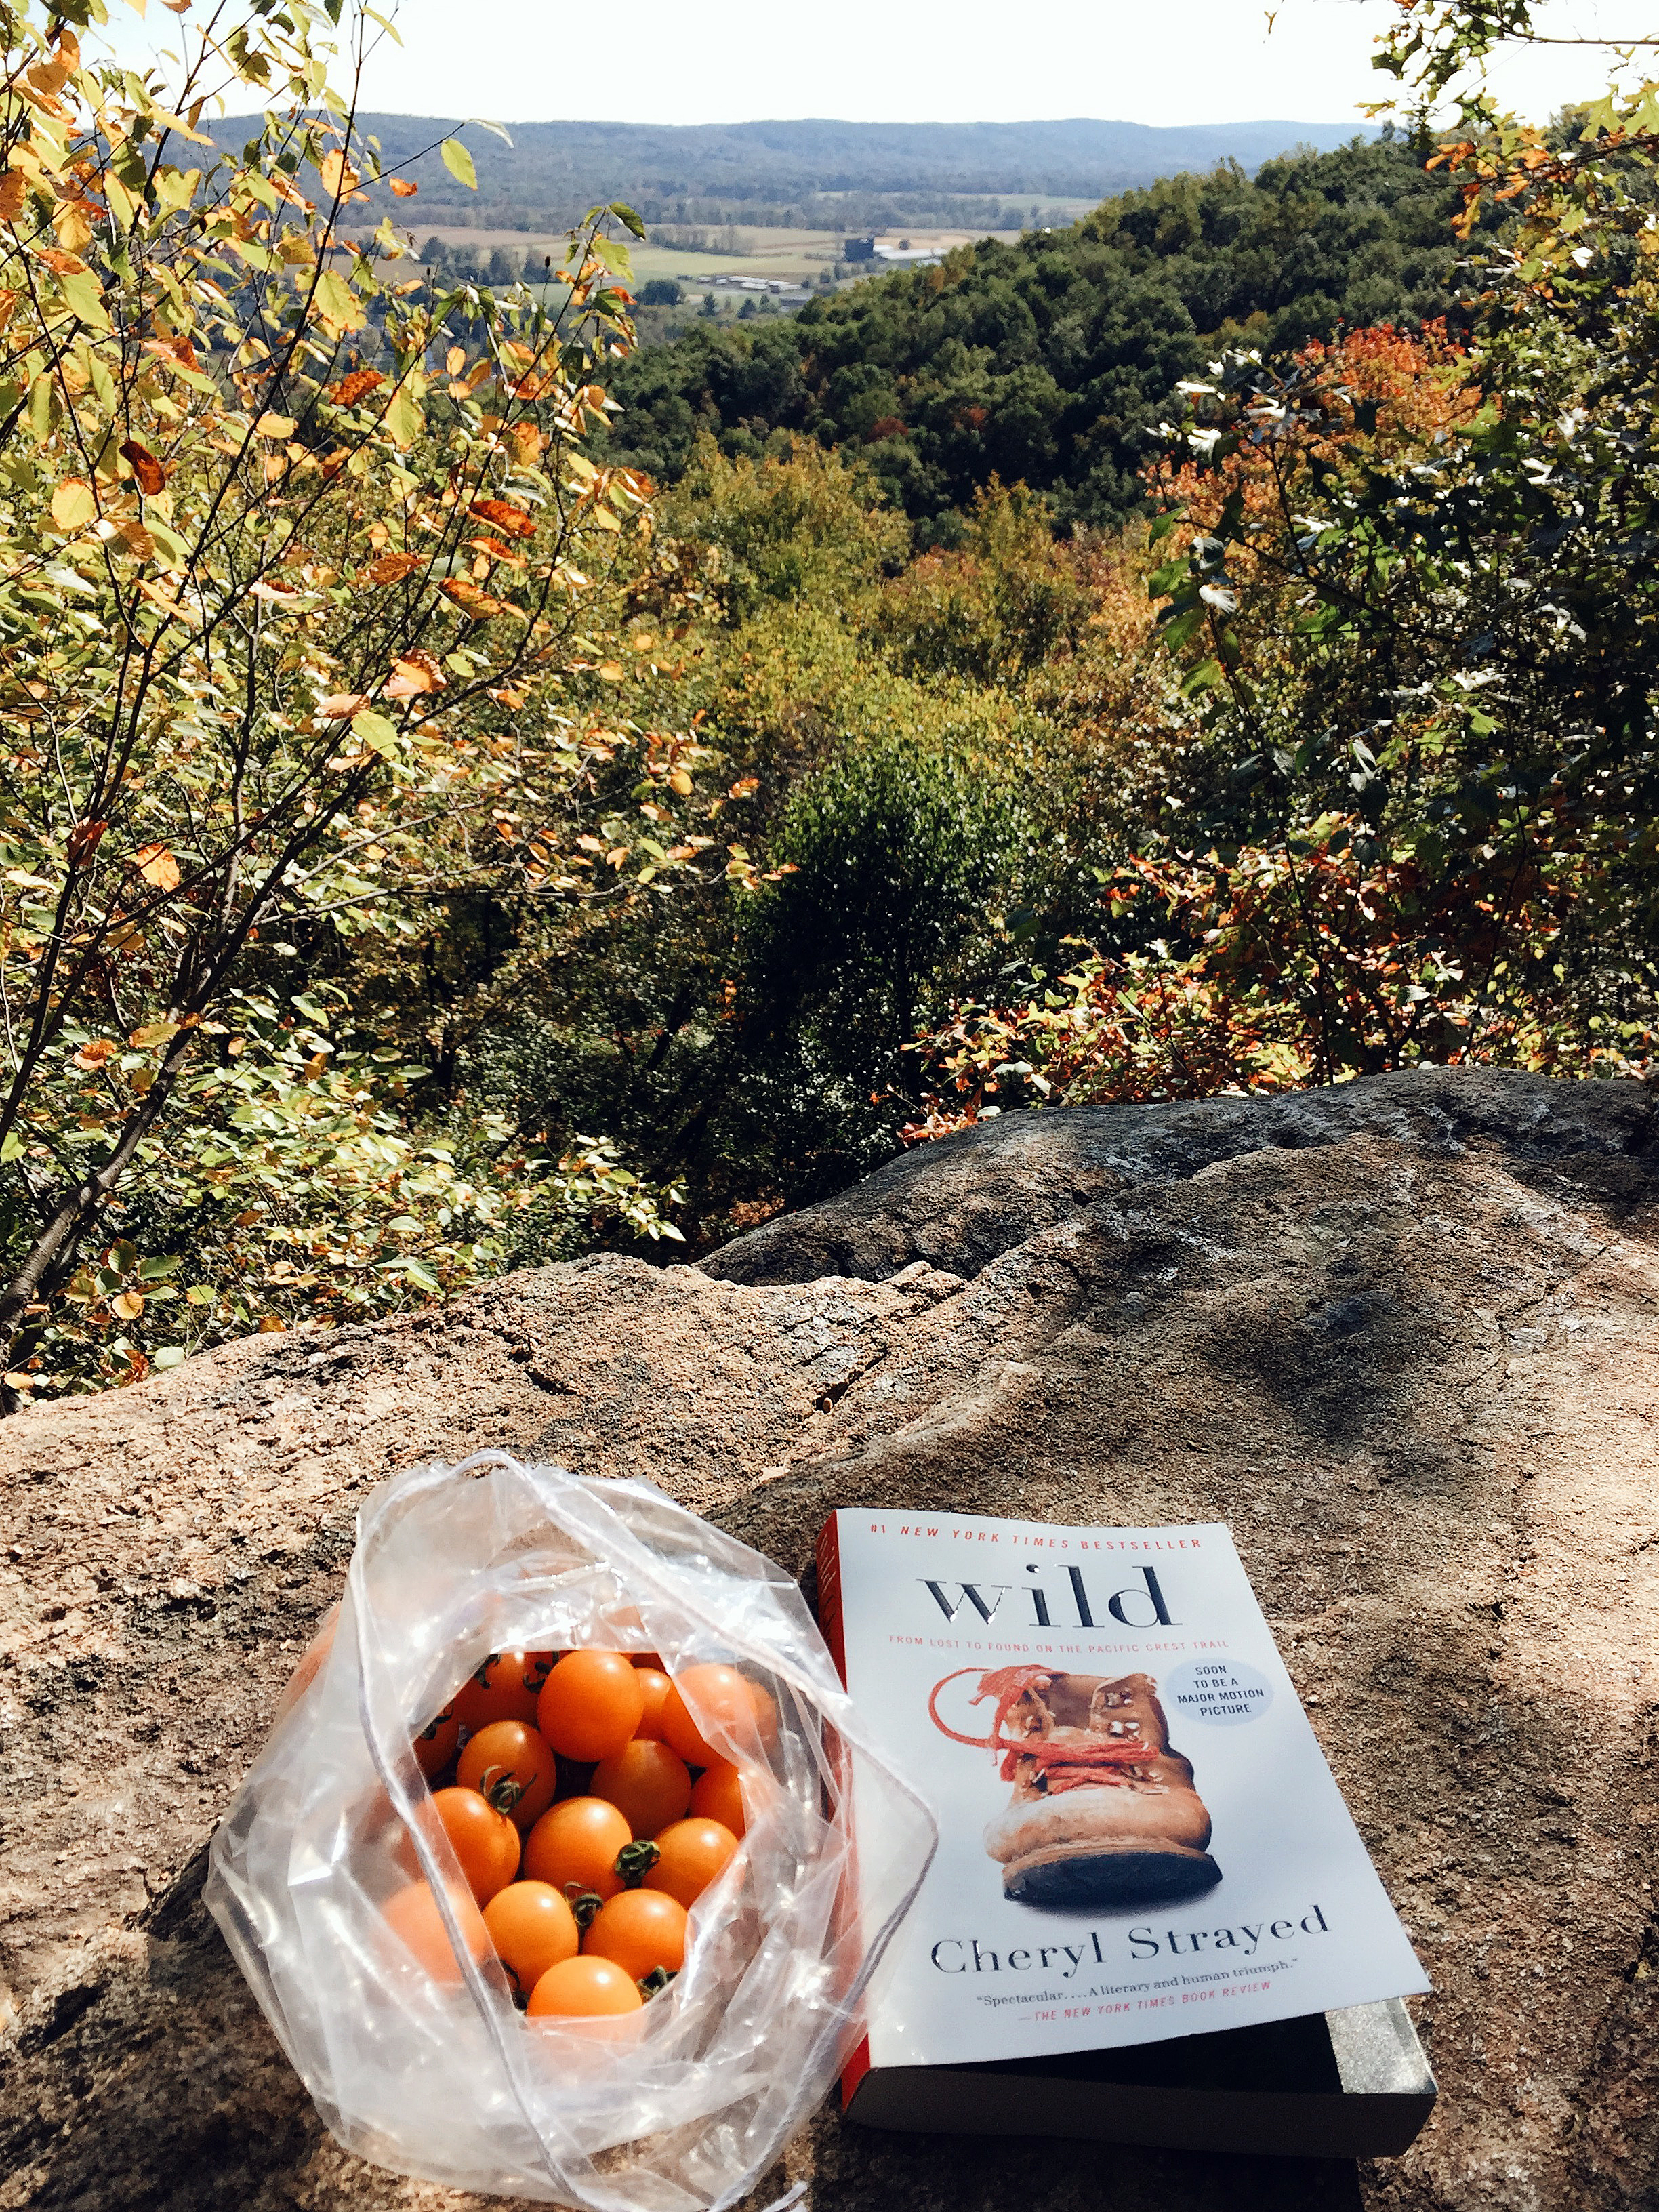 Sunday -- before I destroyed my phone and actually had time to read (and eat delicious locally picked orange cherry tomatoes)